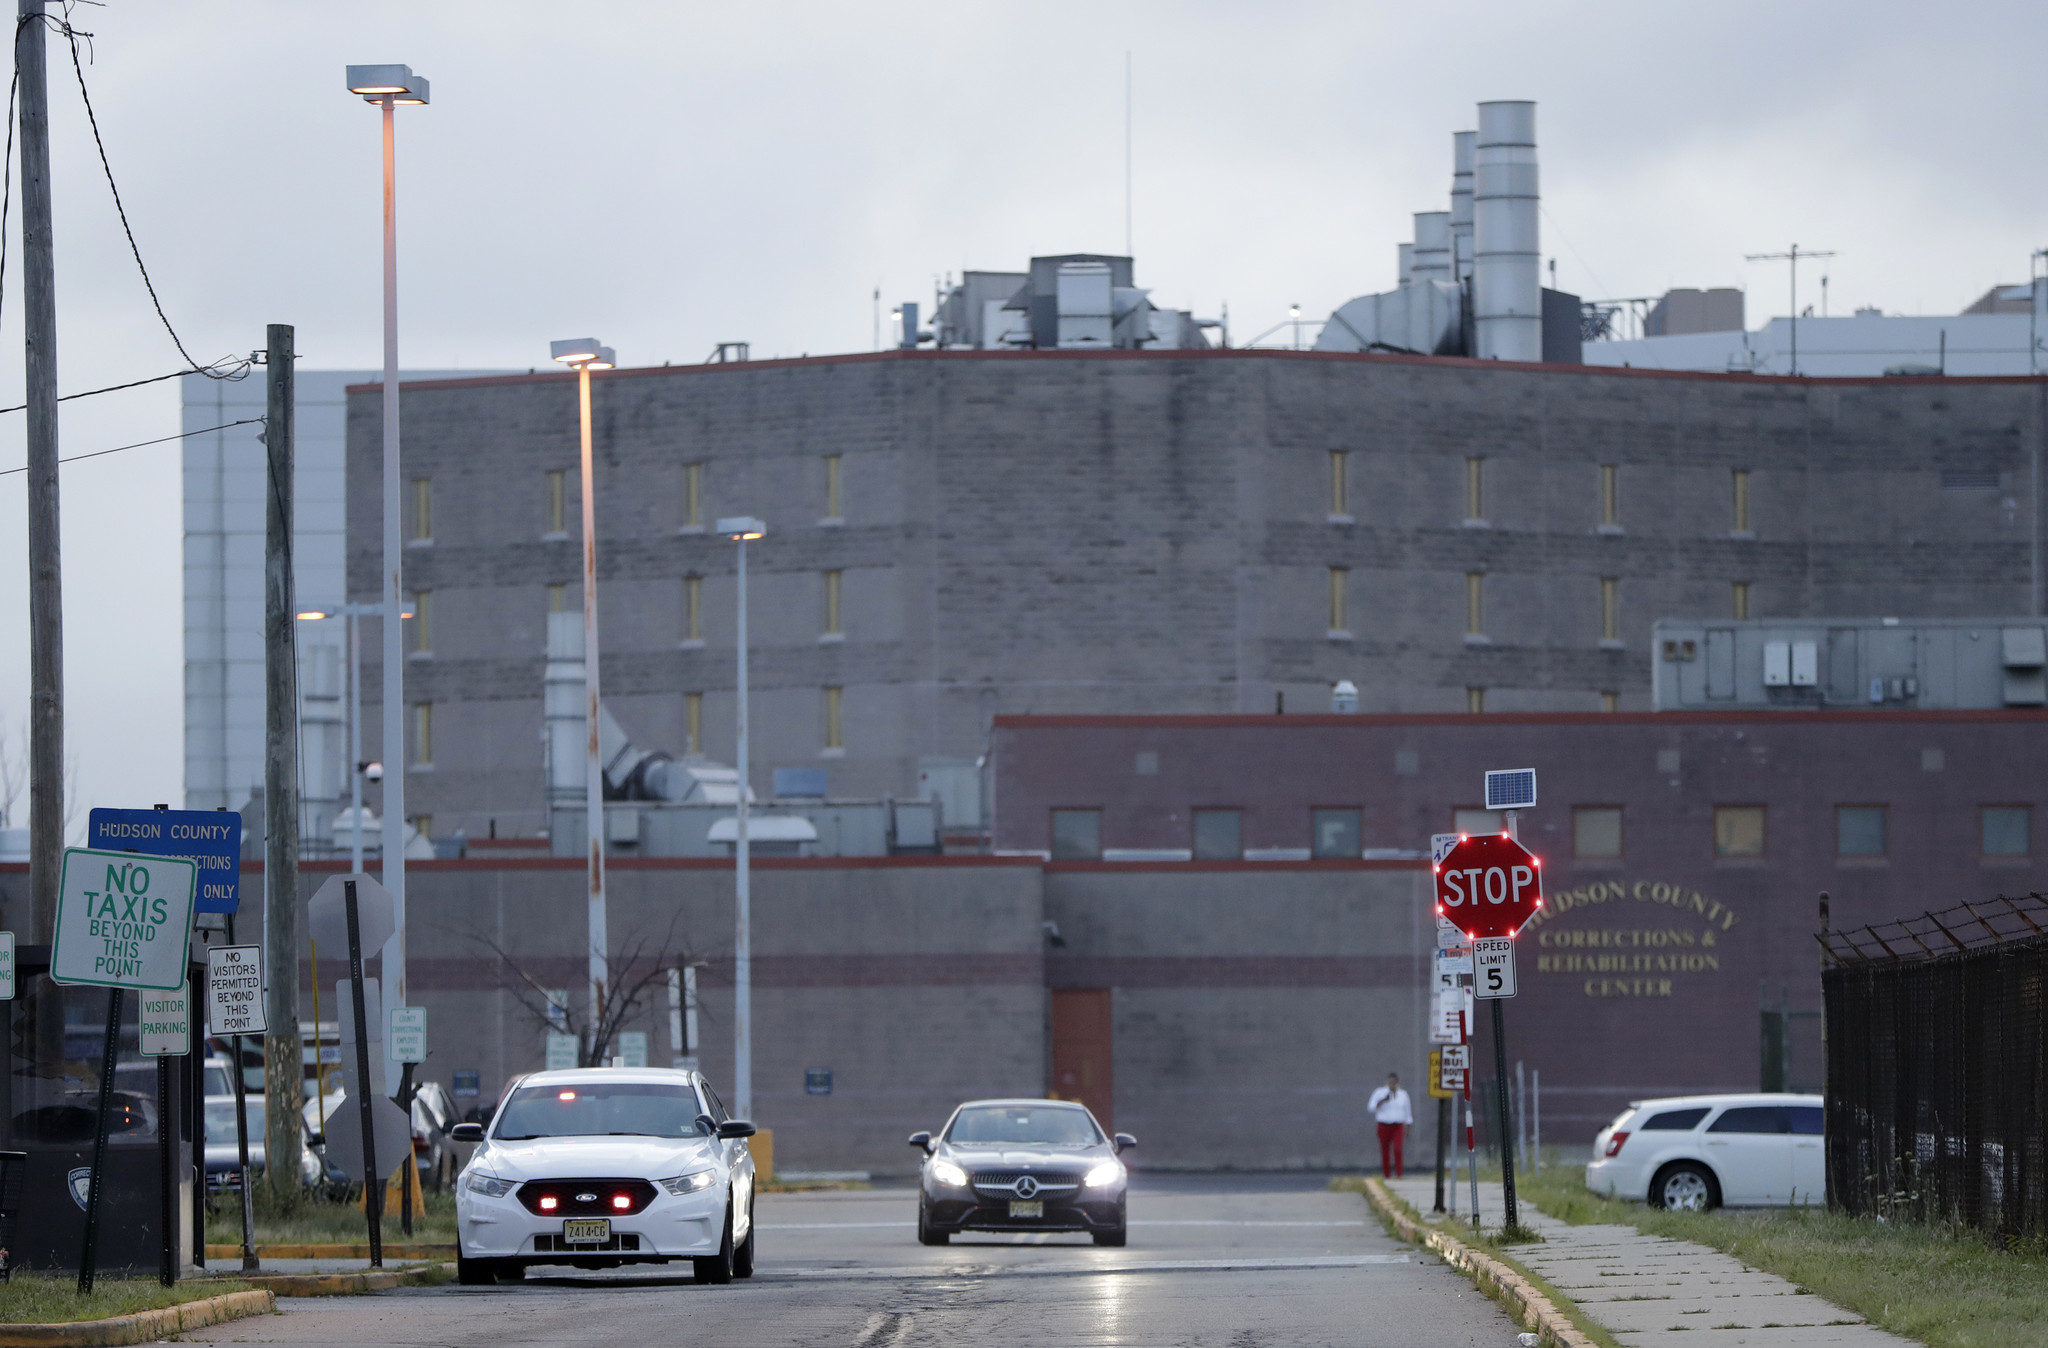 Federal judge orders release of 10 ICE detainees, calls measures to prevent coronavirus outbreak in jails 'insufficient'